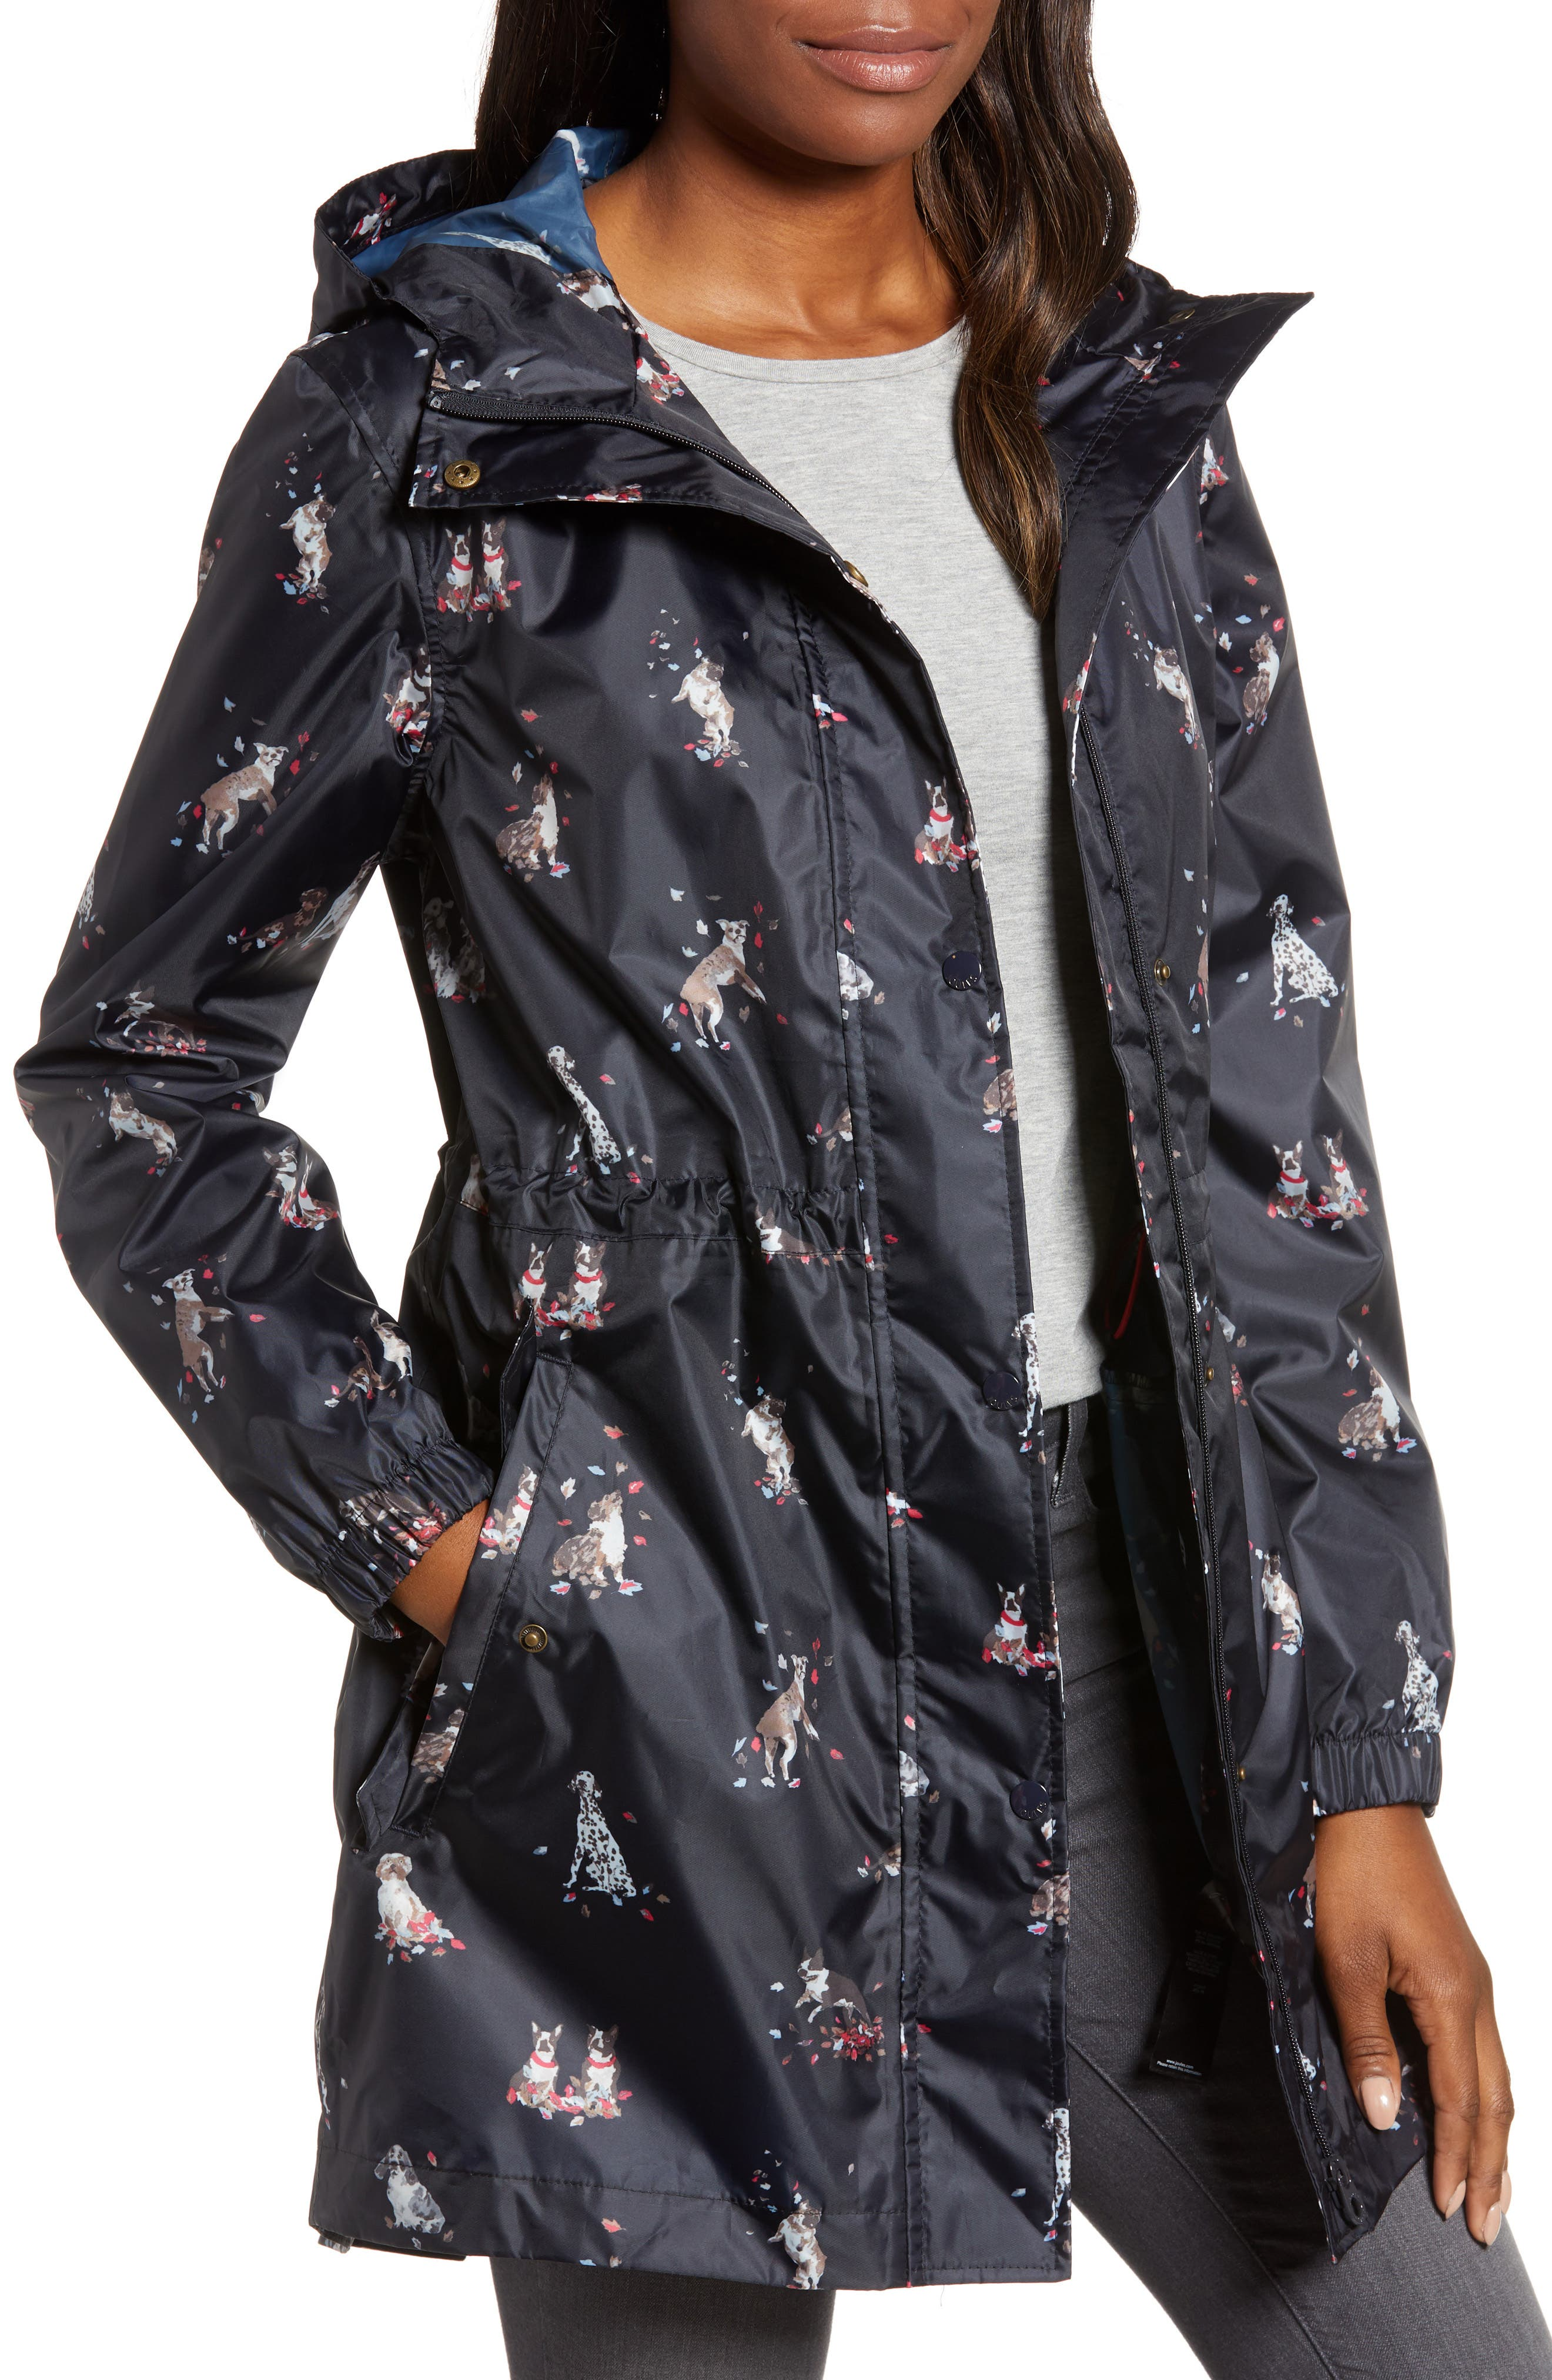 Right as Rain Packable Print Hooded Raincoat,                             Main thumbnail 1, color,                             DOGS IN LEAVES